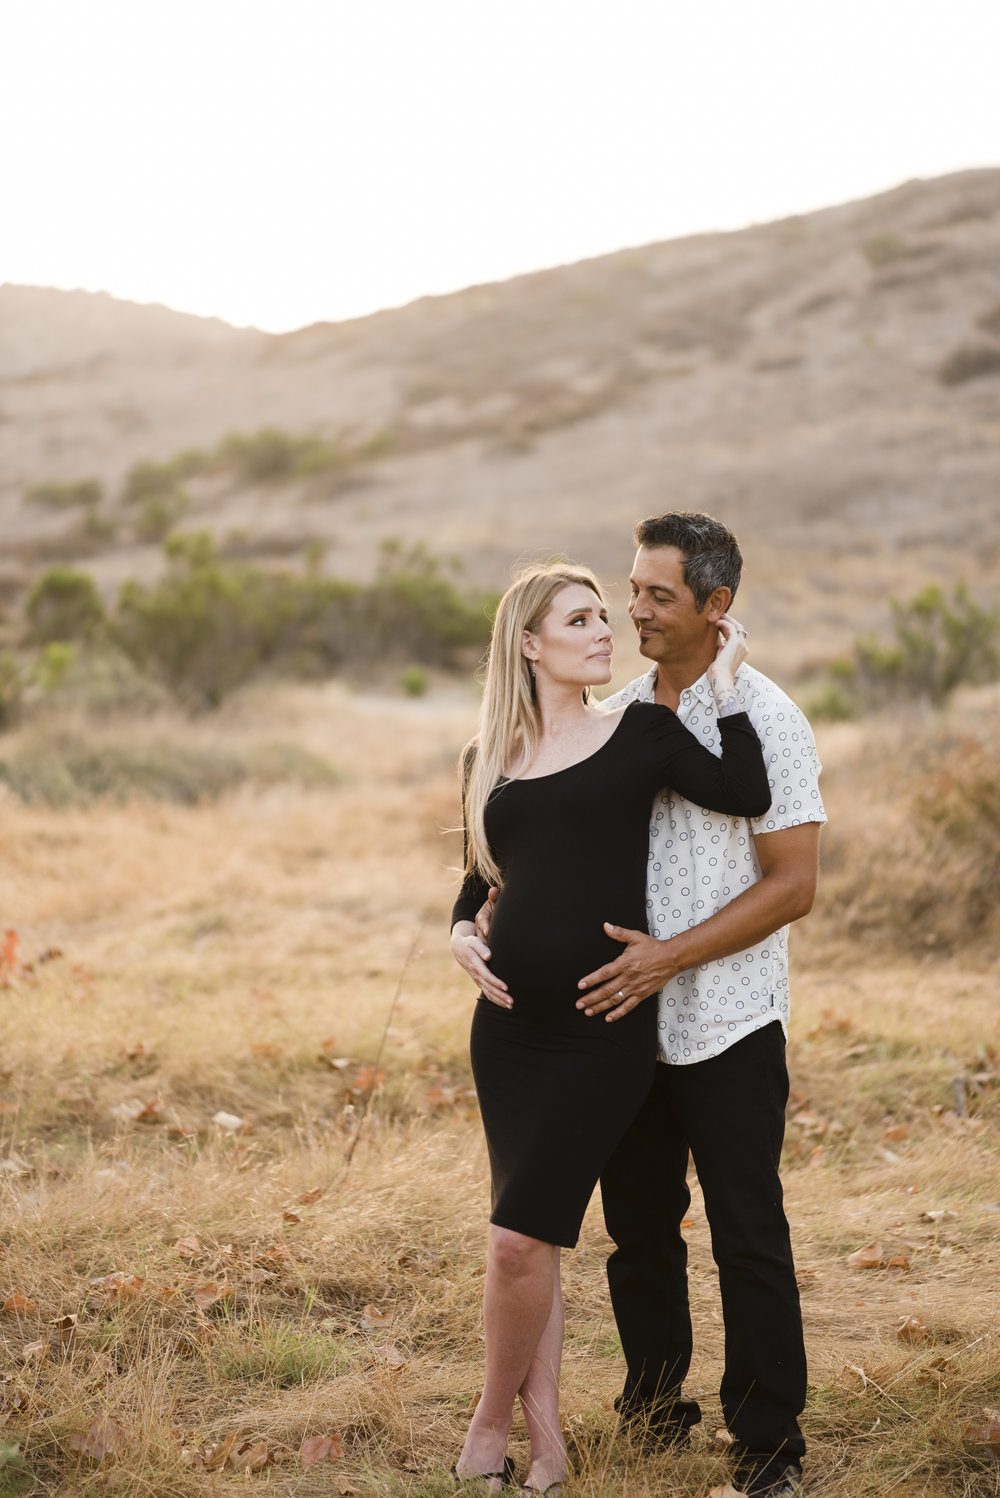 San Diego Maternity Photos10.jpg